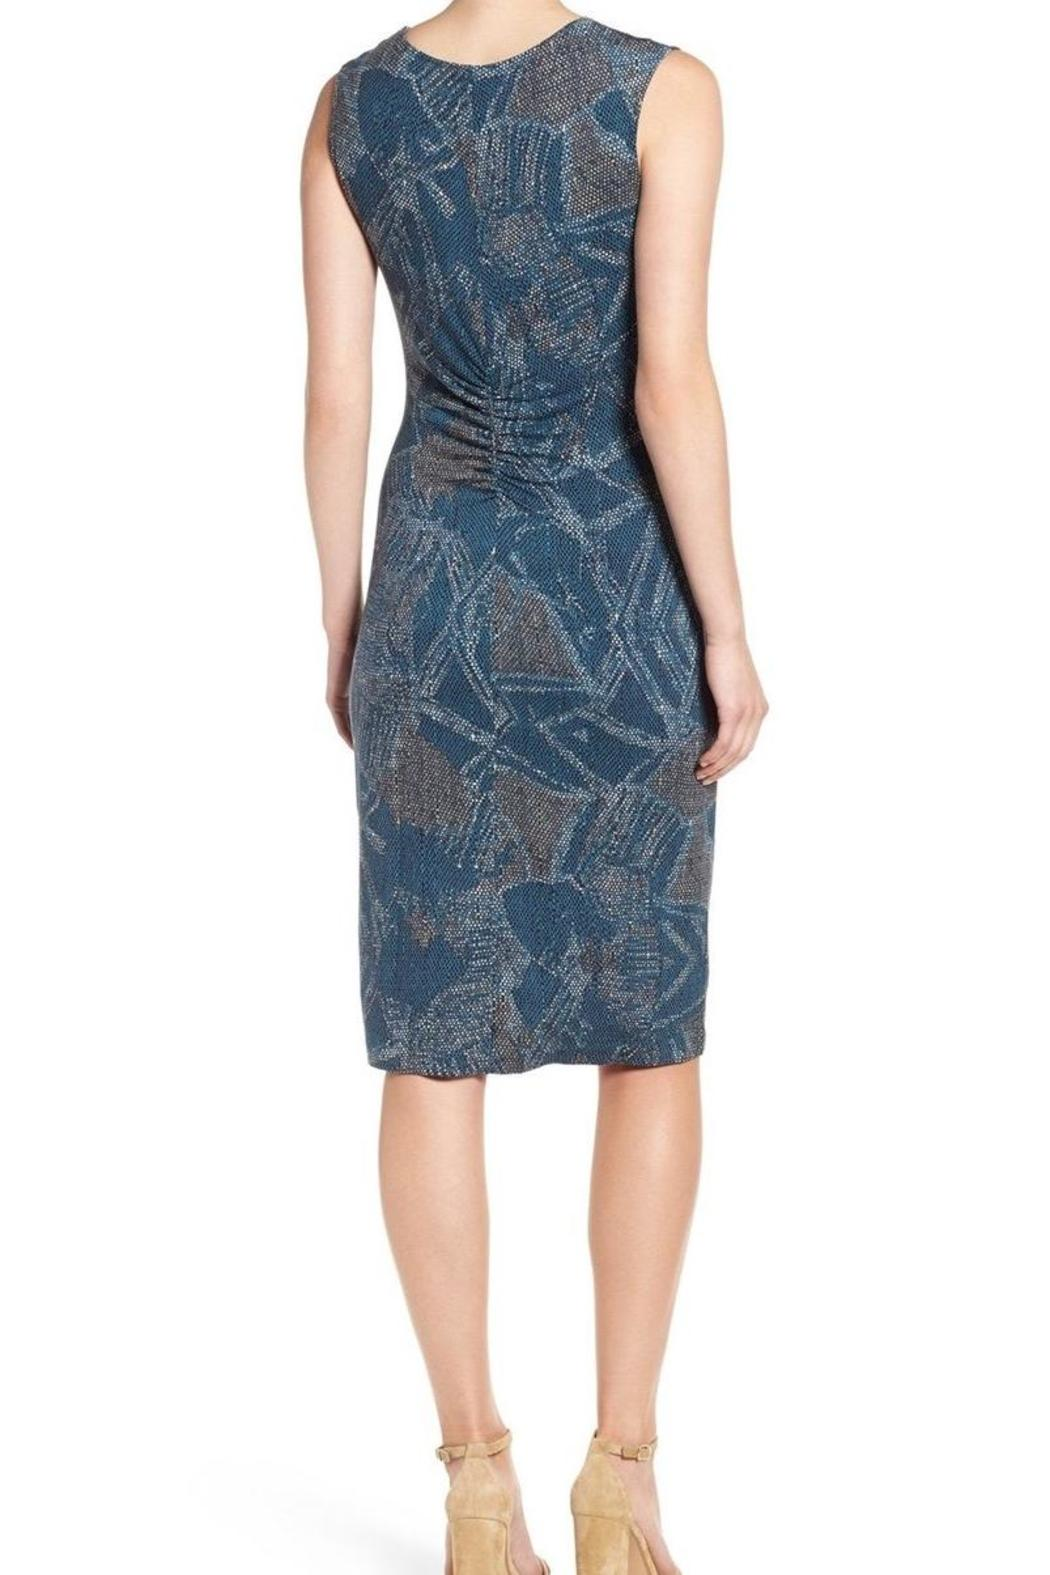 Nic + Zoe Blue Twist Dress - Front Full Image